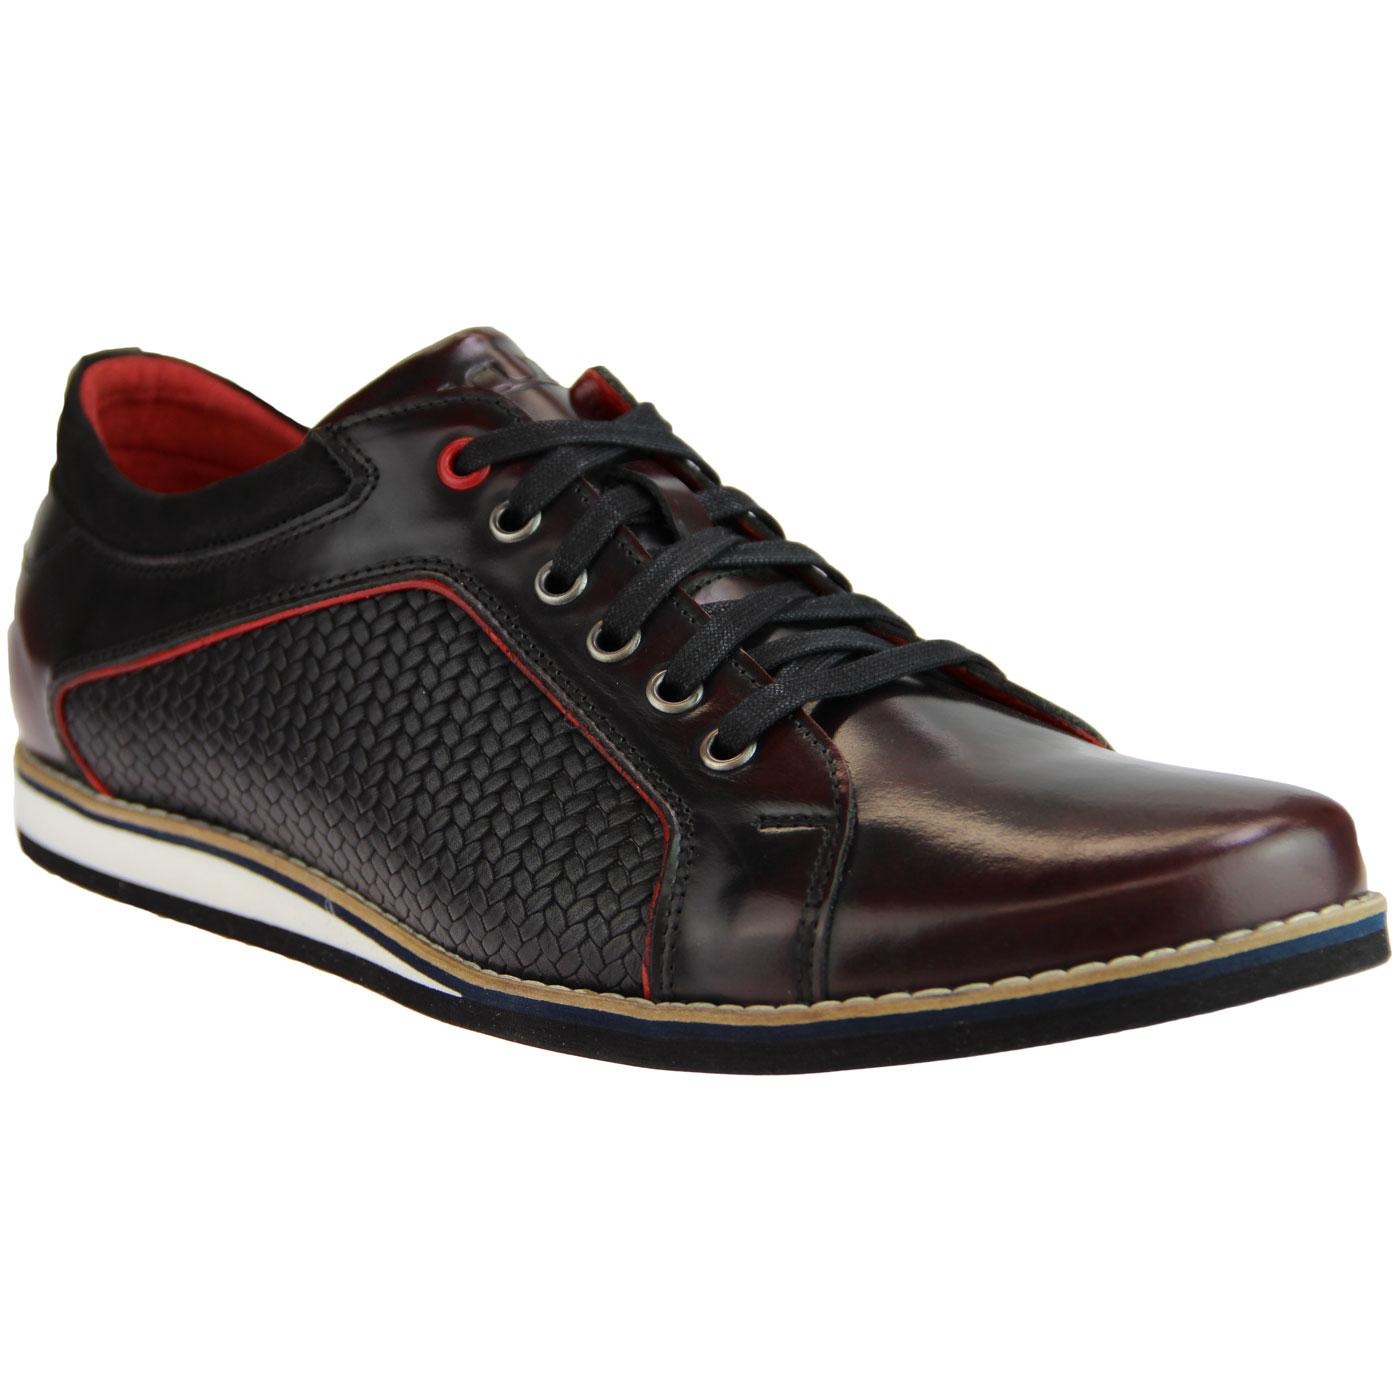 LACUZZO Retro Weave Northern Soul Trainer Shoes C